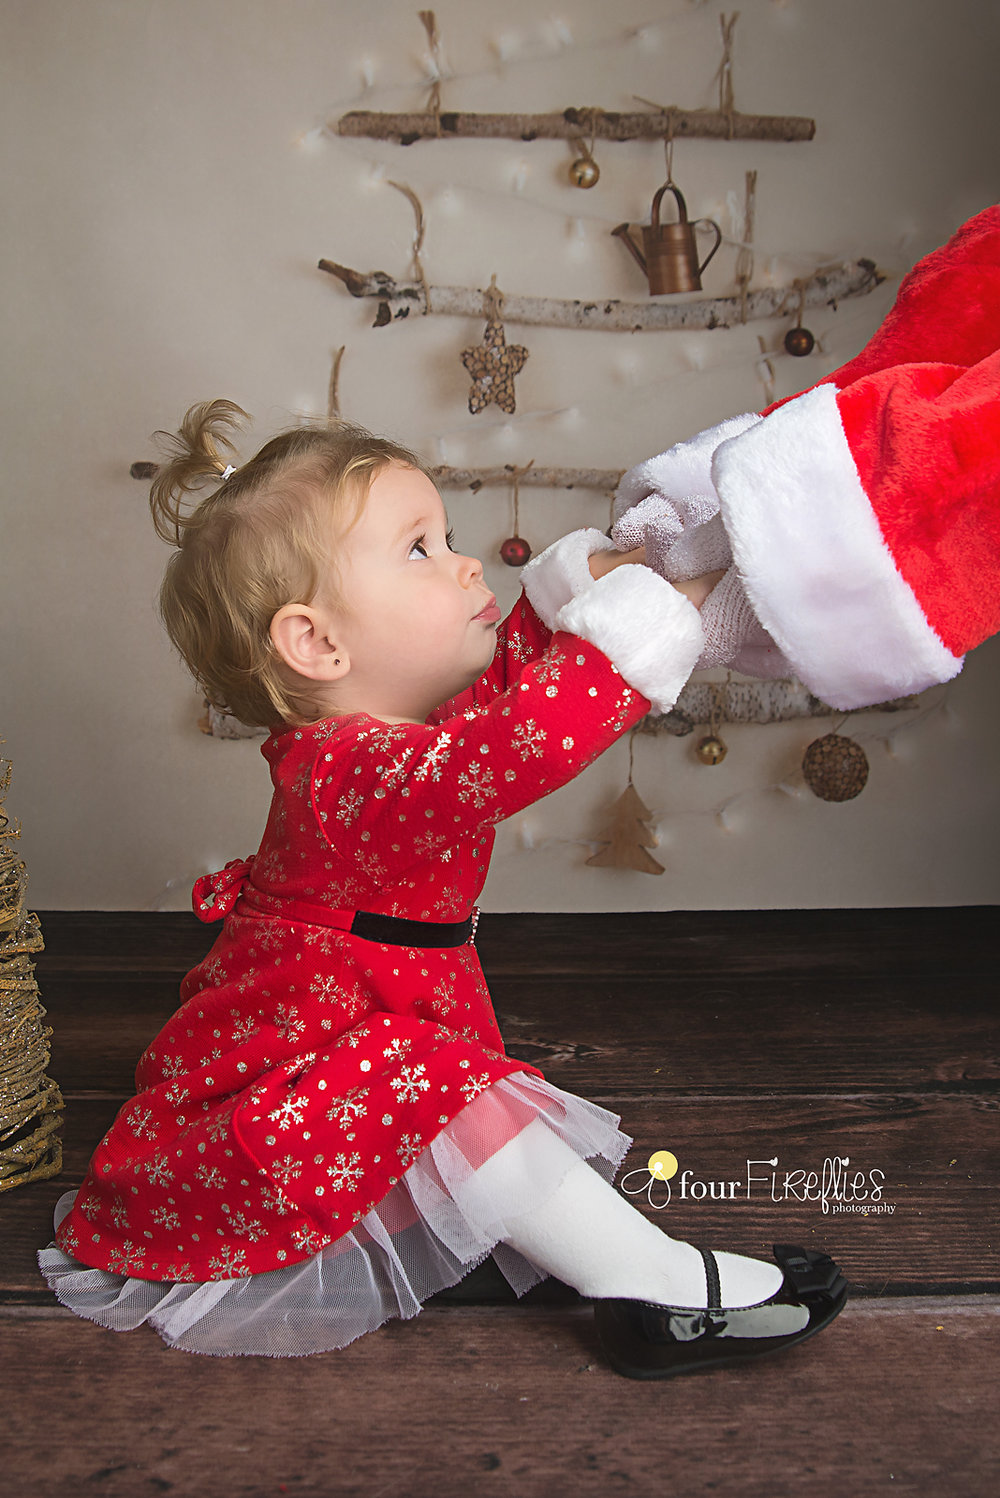 St-Louis-photographer-holiday-mini-sessions-2017-girl-in-red-dress-holding-santas-hands.jpg